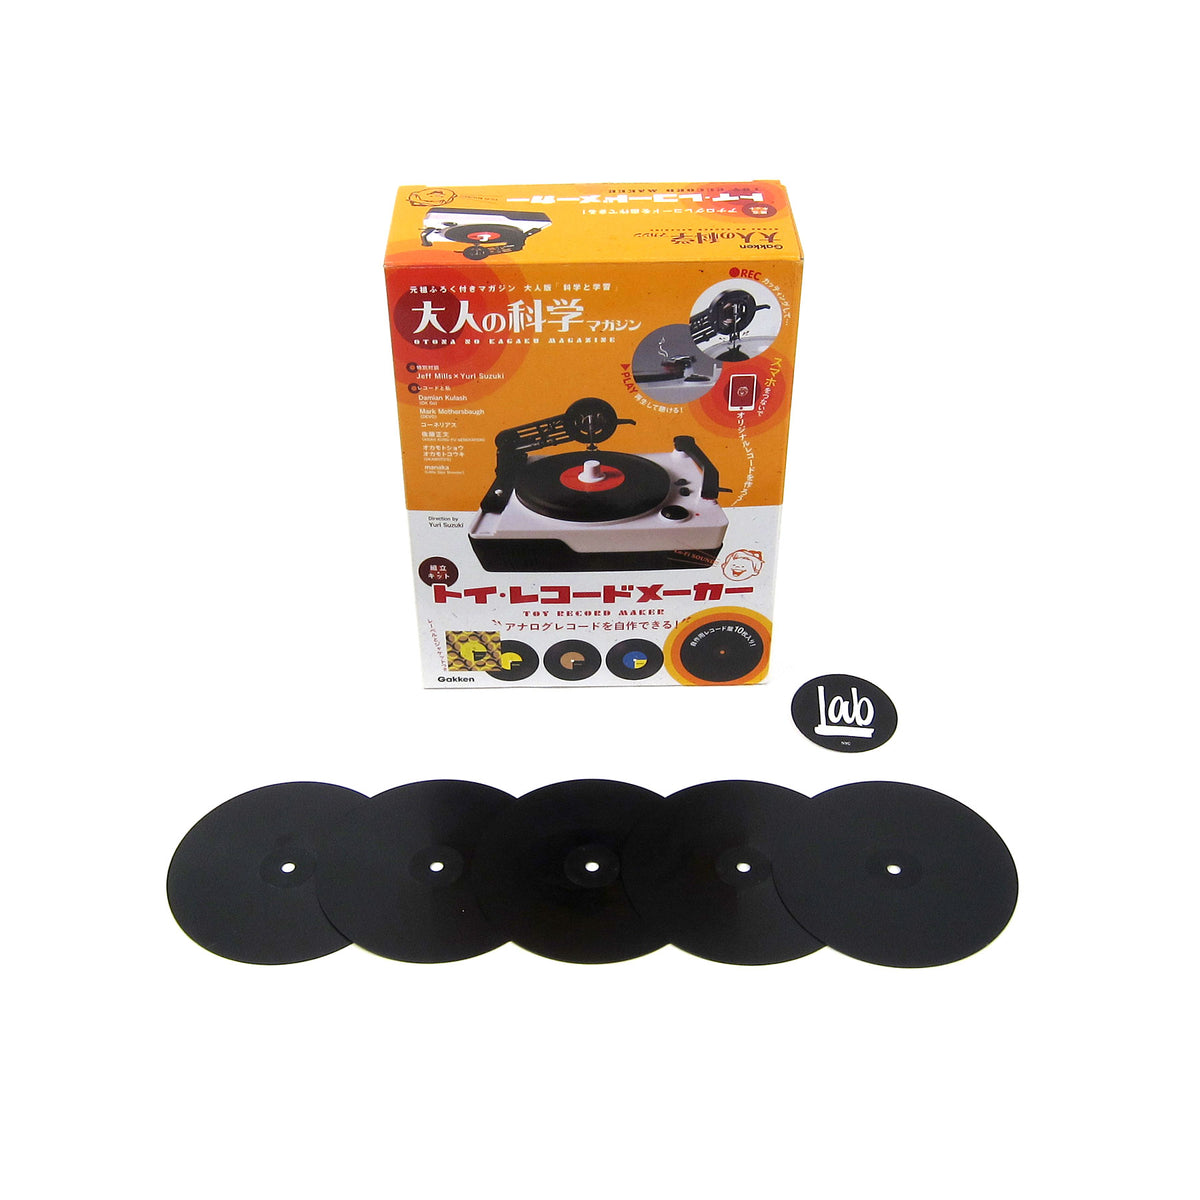 Gakken: Replacement Vinyl for Easy Record Maker - 5 Pack / Black